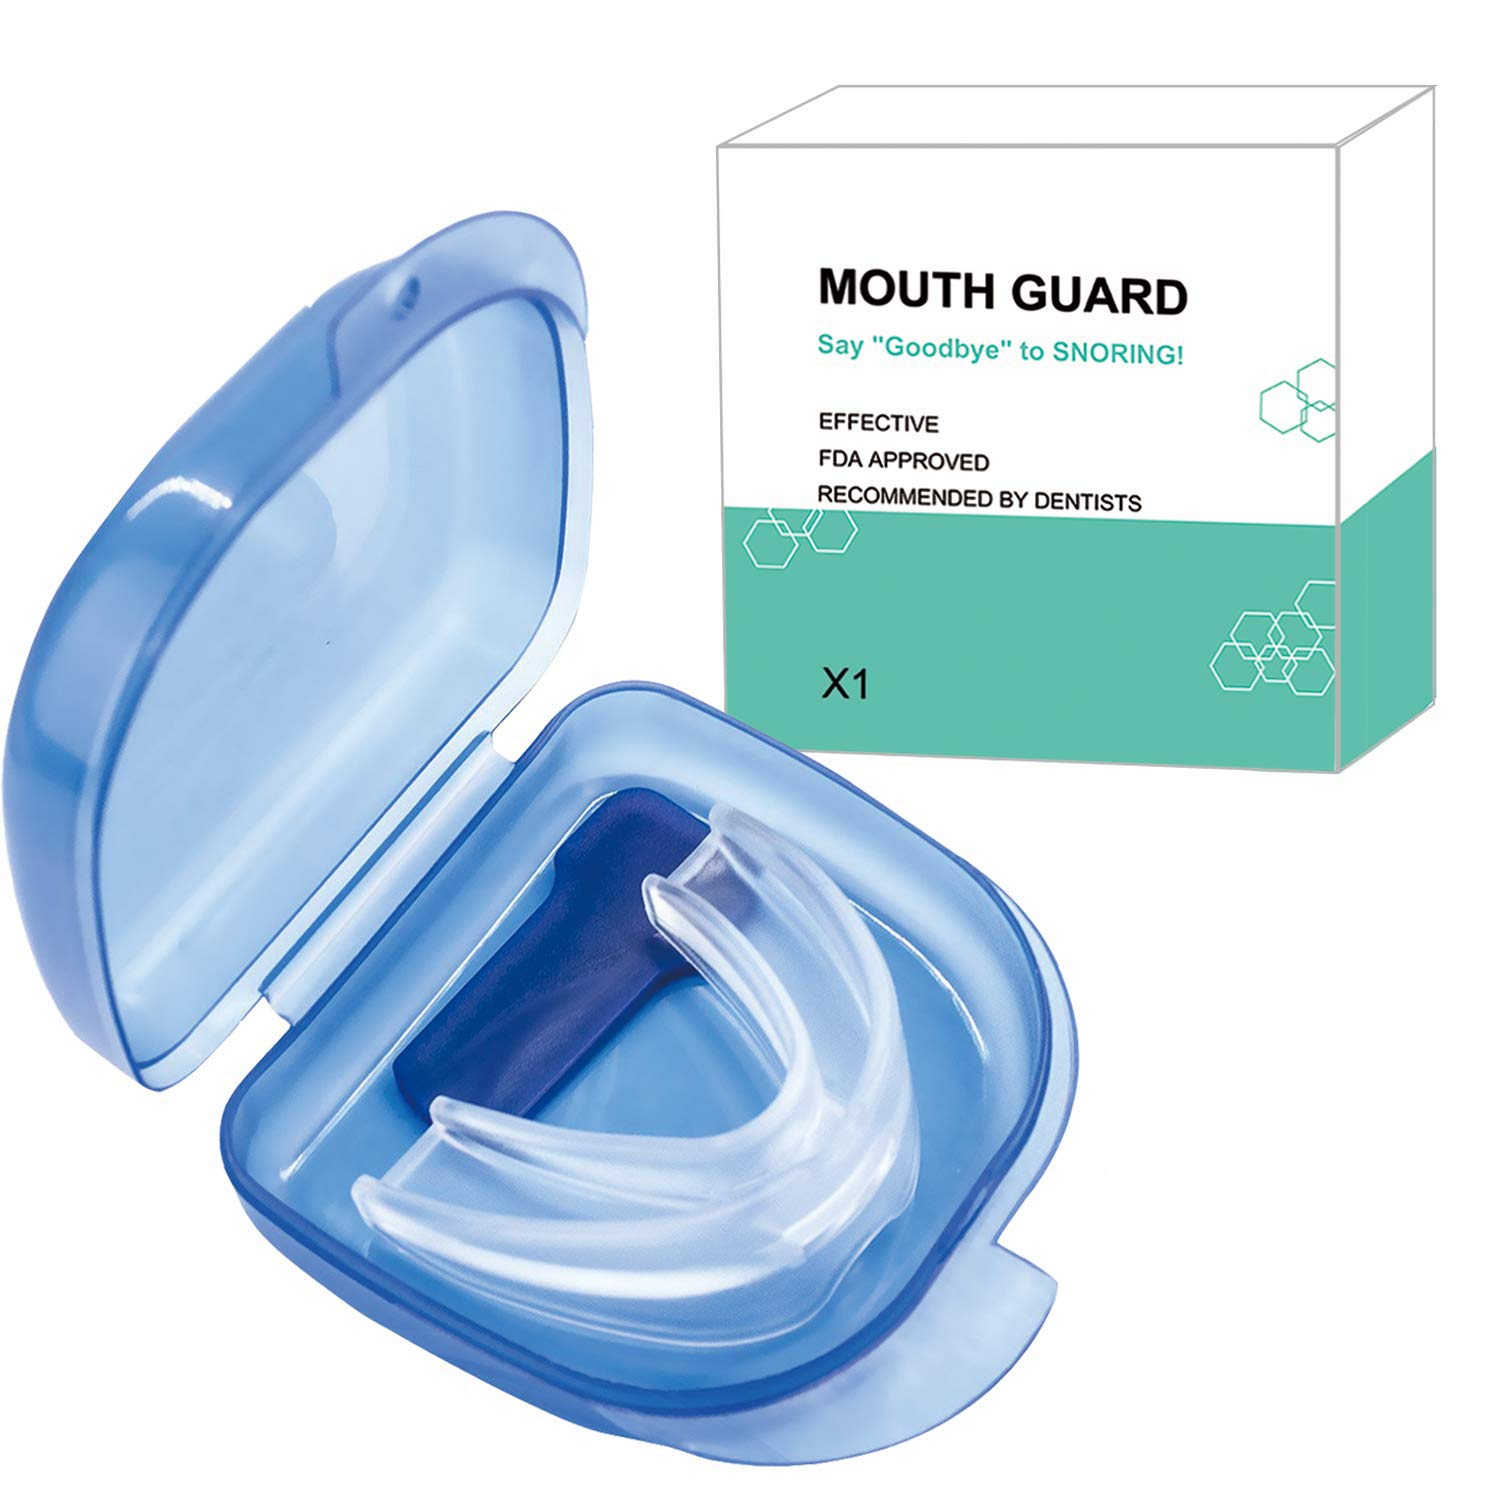 Mouth Guards for Teeth Grinding, Custom Fit Anti